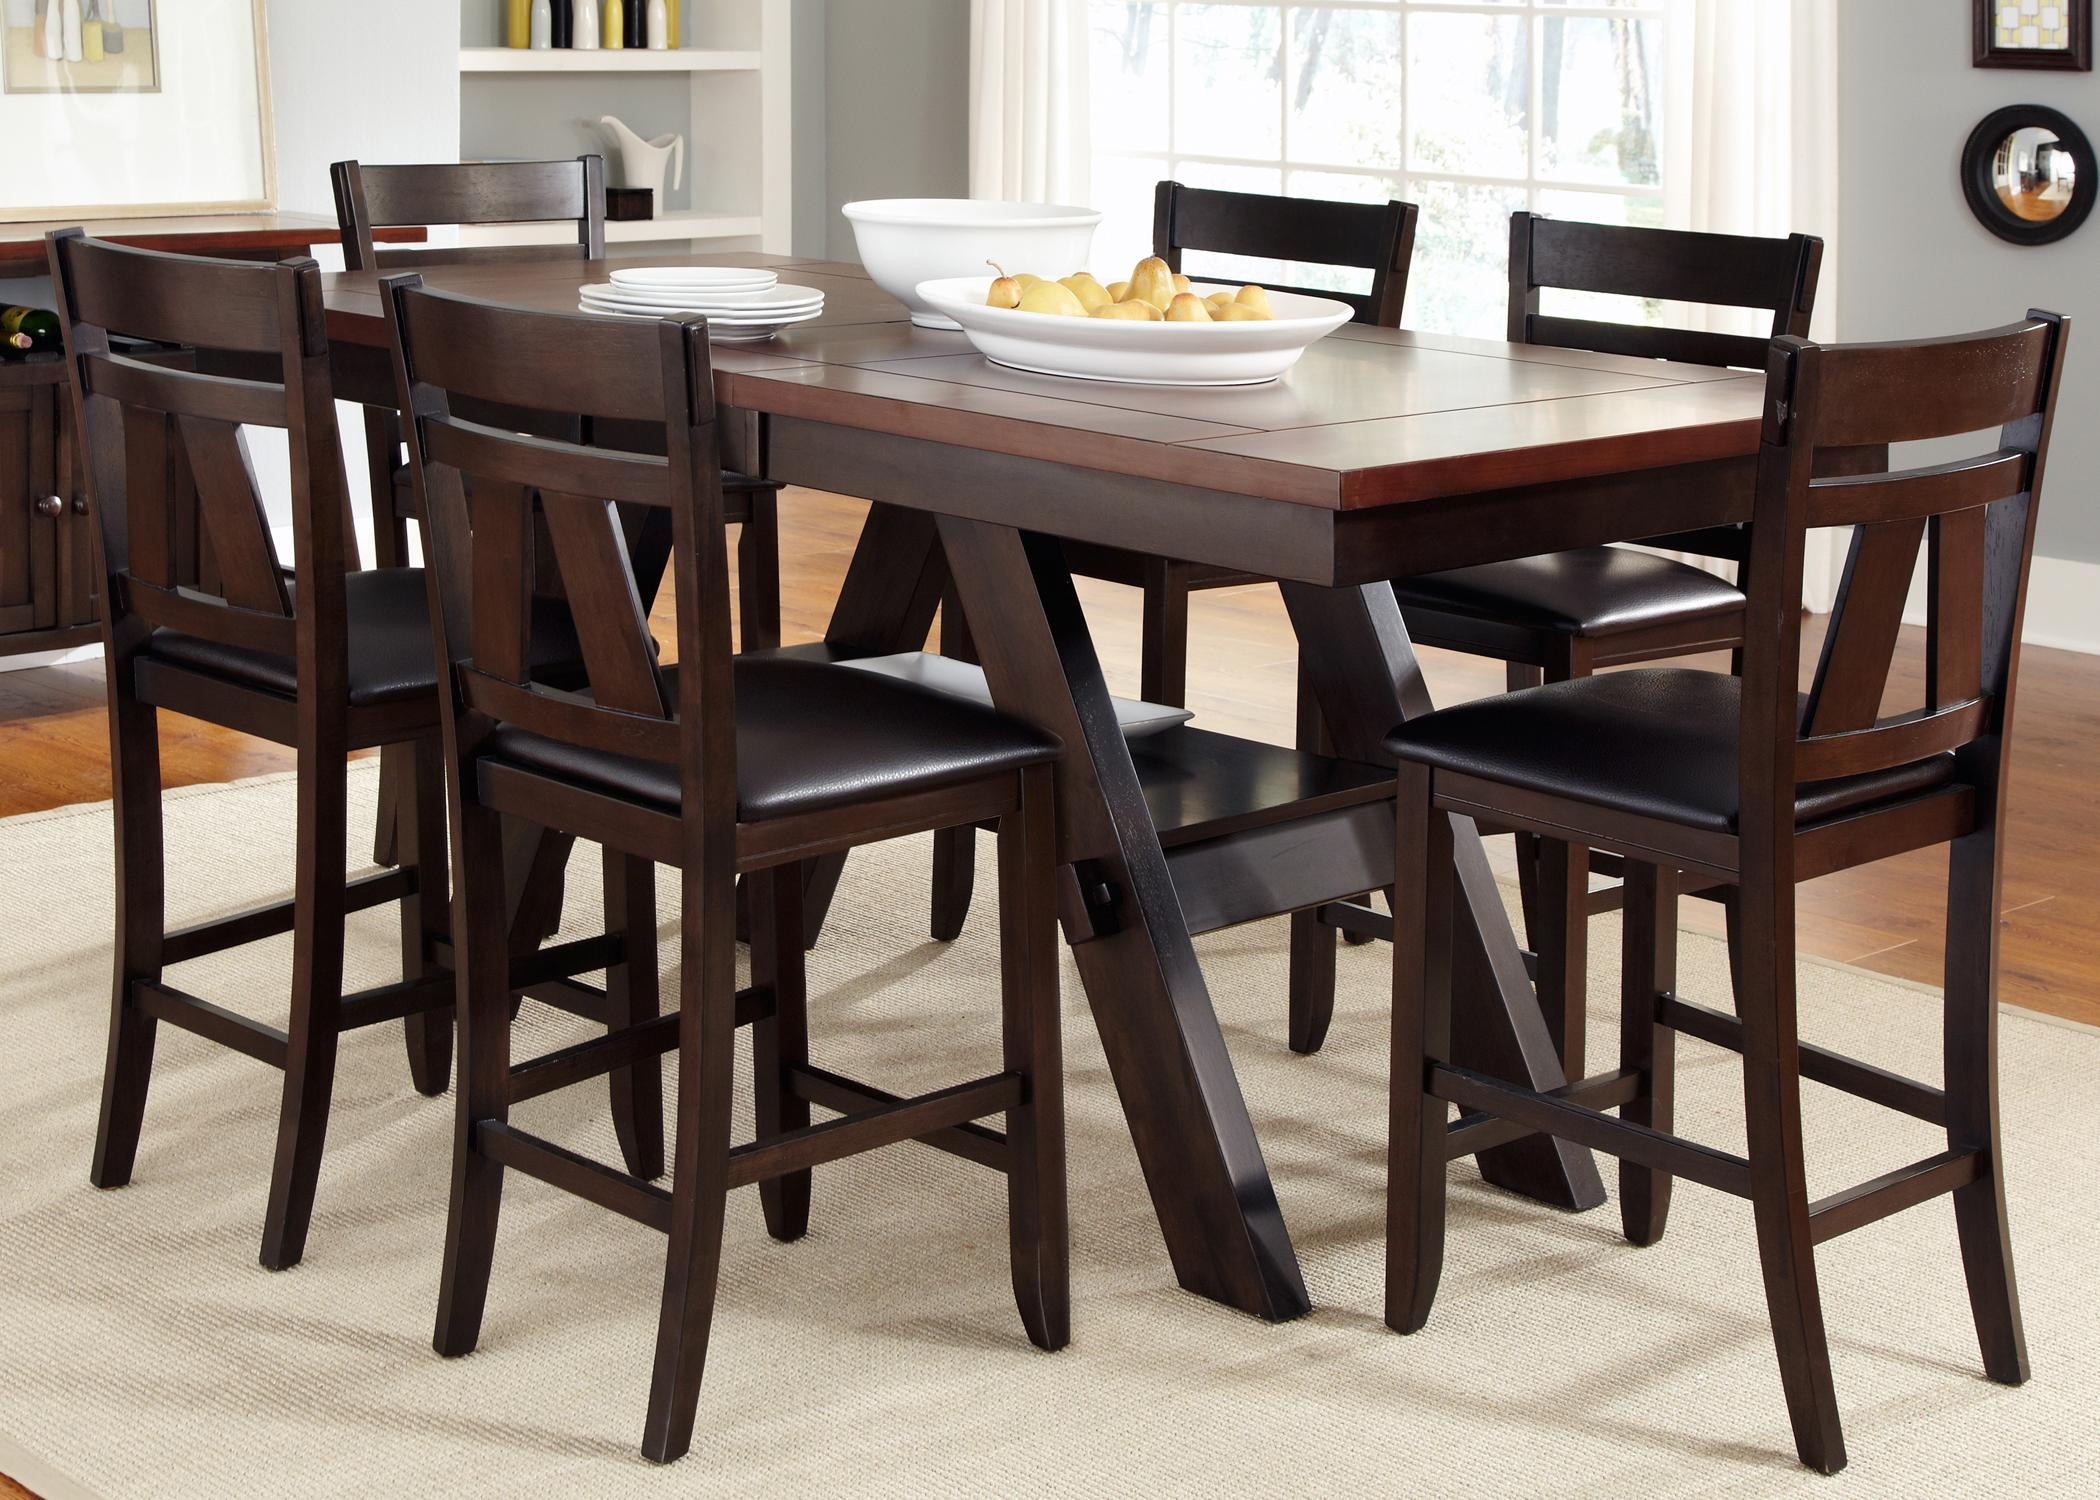 Bar Height Table And Chairs Lawson 7 Piece Trestle Gathering Table With Counter Height Chairs Set By Vendor 5349 At Becker Furniture World